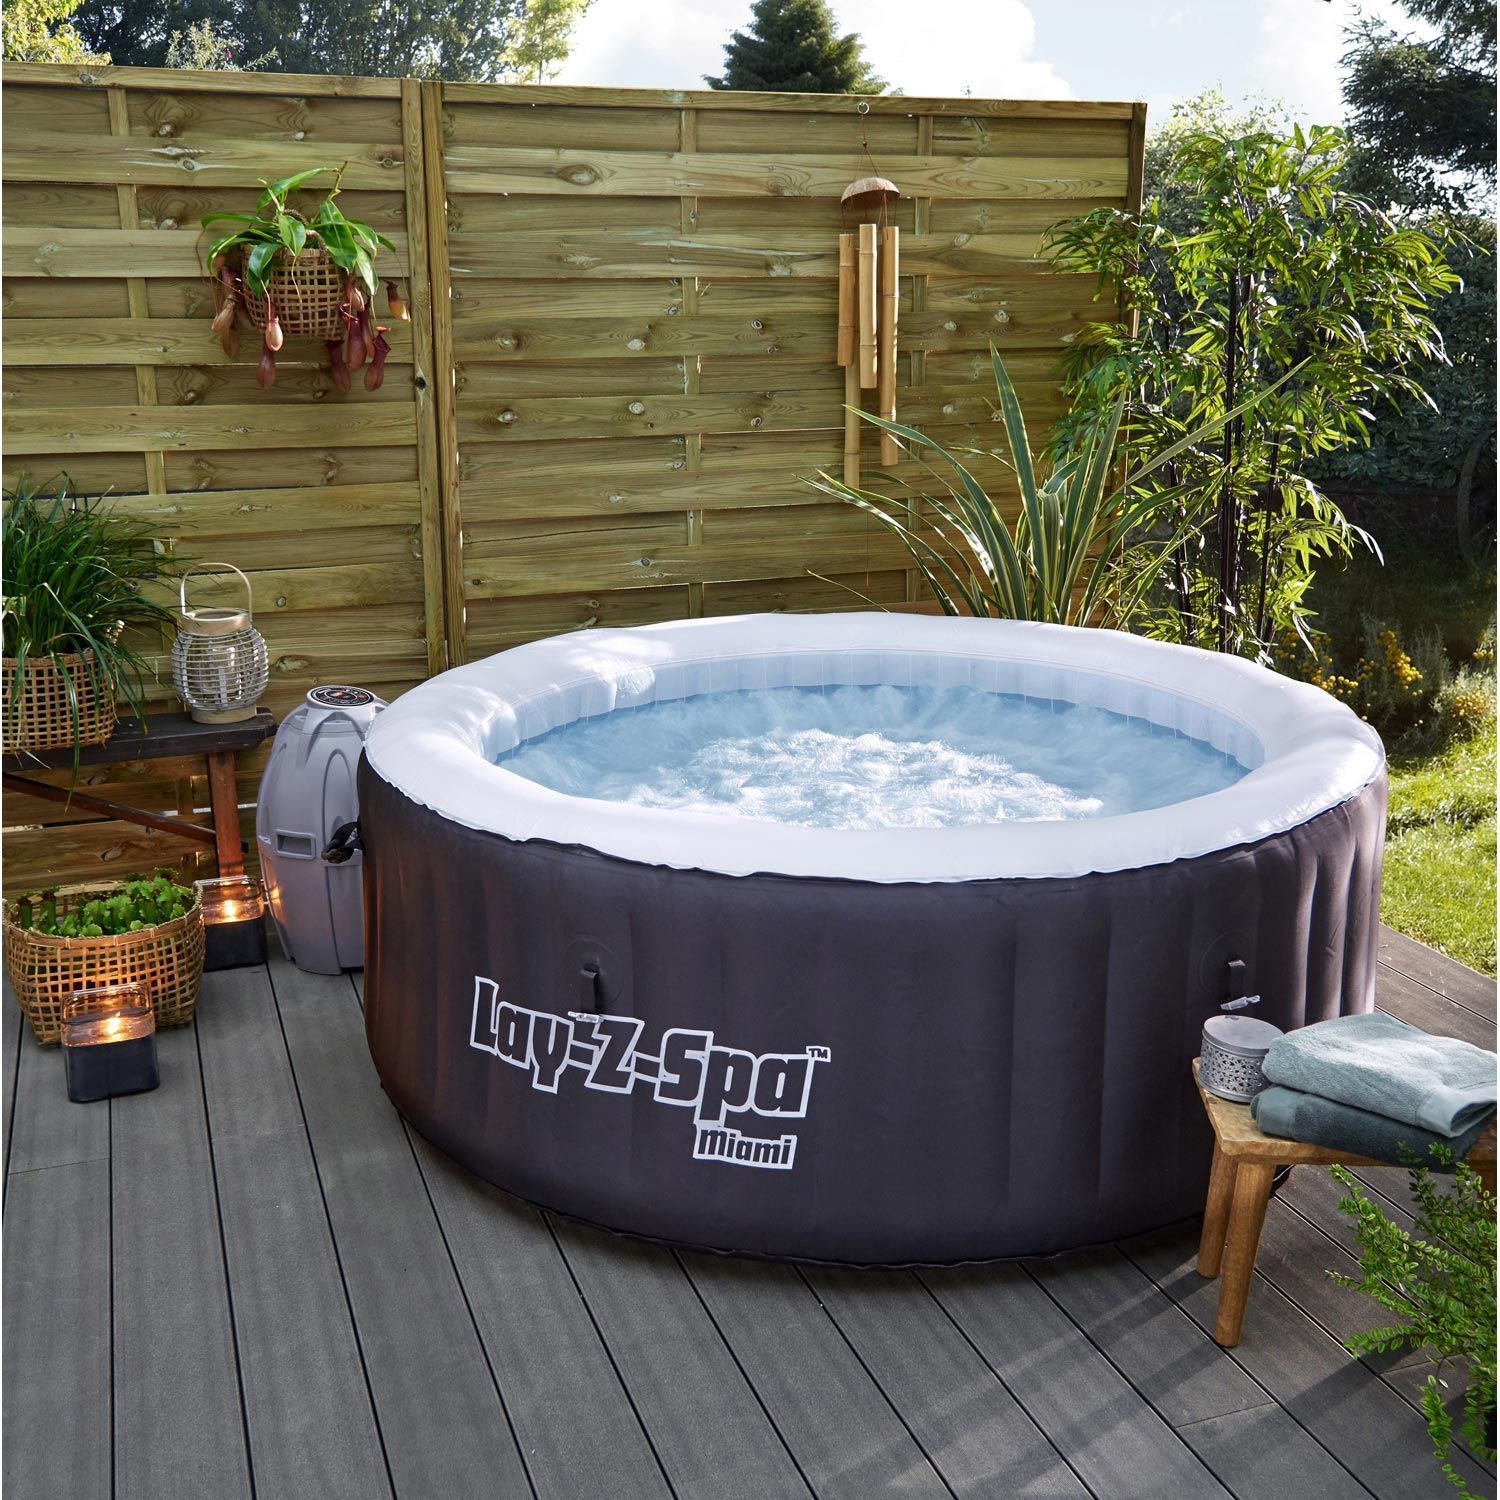 Amenagement Spa Gonflable Interieur desjoyaux | spa gonflable, jacuzzi gonflable, jacuzzi